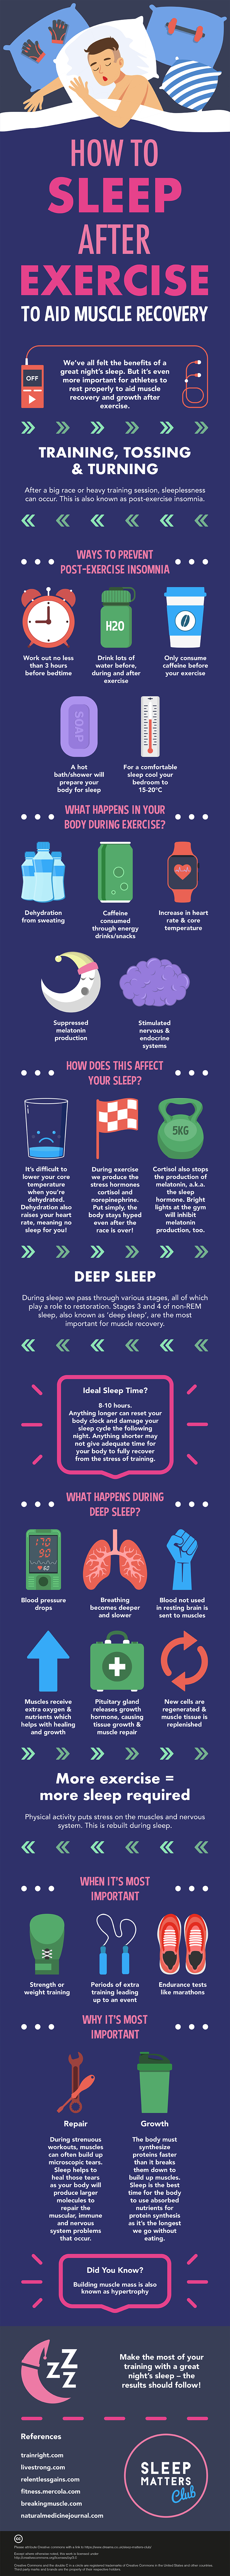 Why the Post-Exercise Sleep Stage is Essential for Muscle Recovery & Growth - Infographic